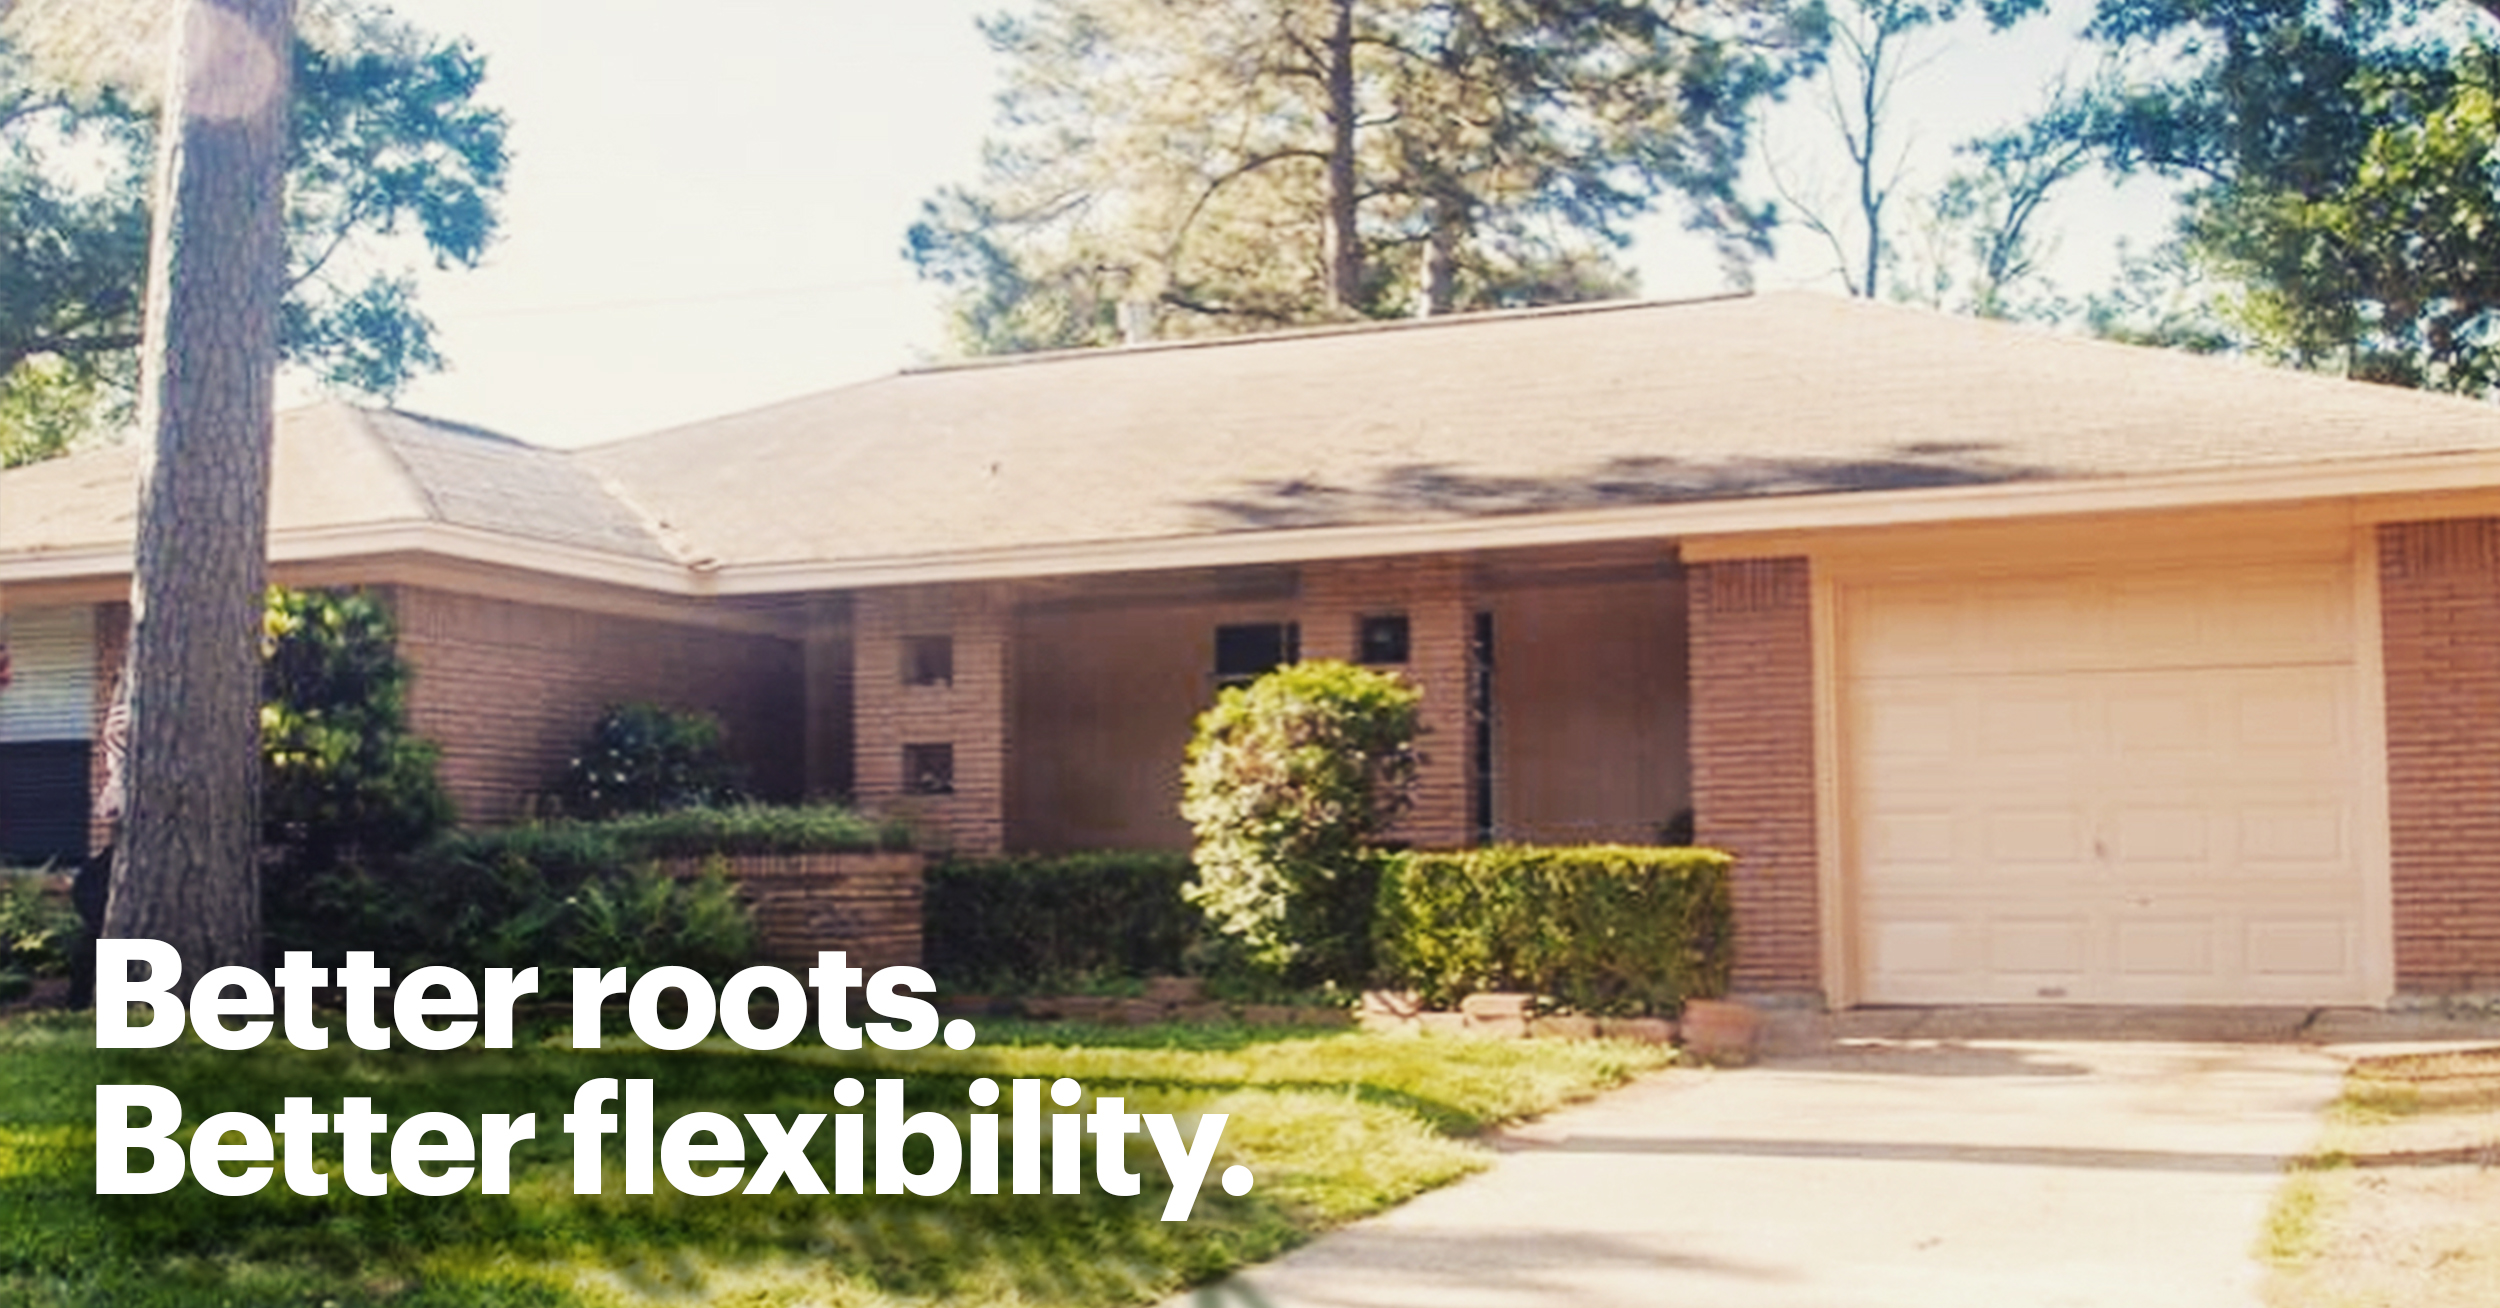 Image of One Story House with White Text that States Better Roots Better Flexibility